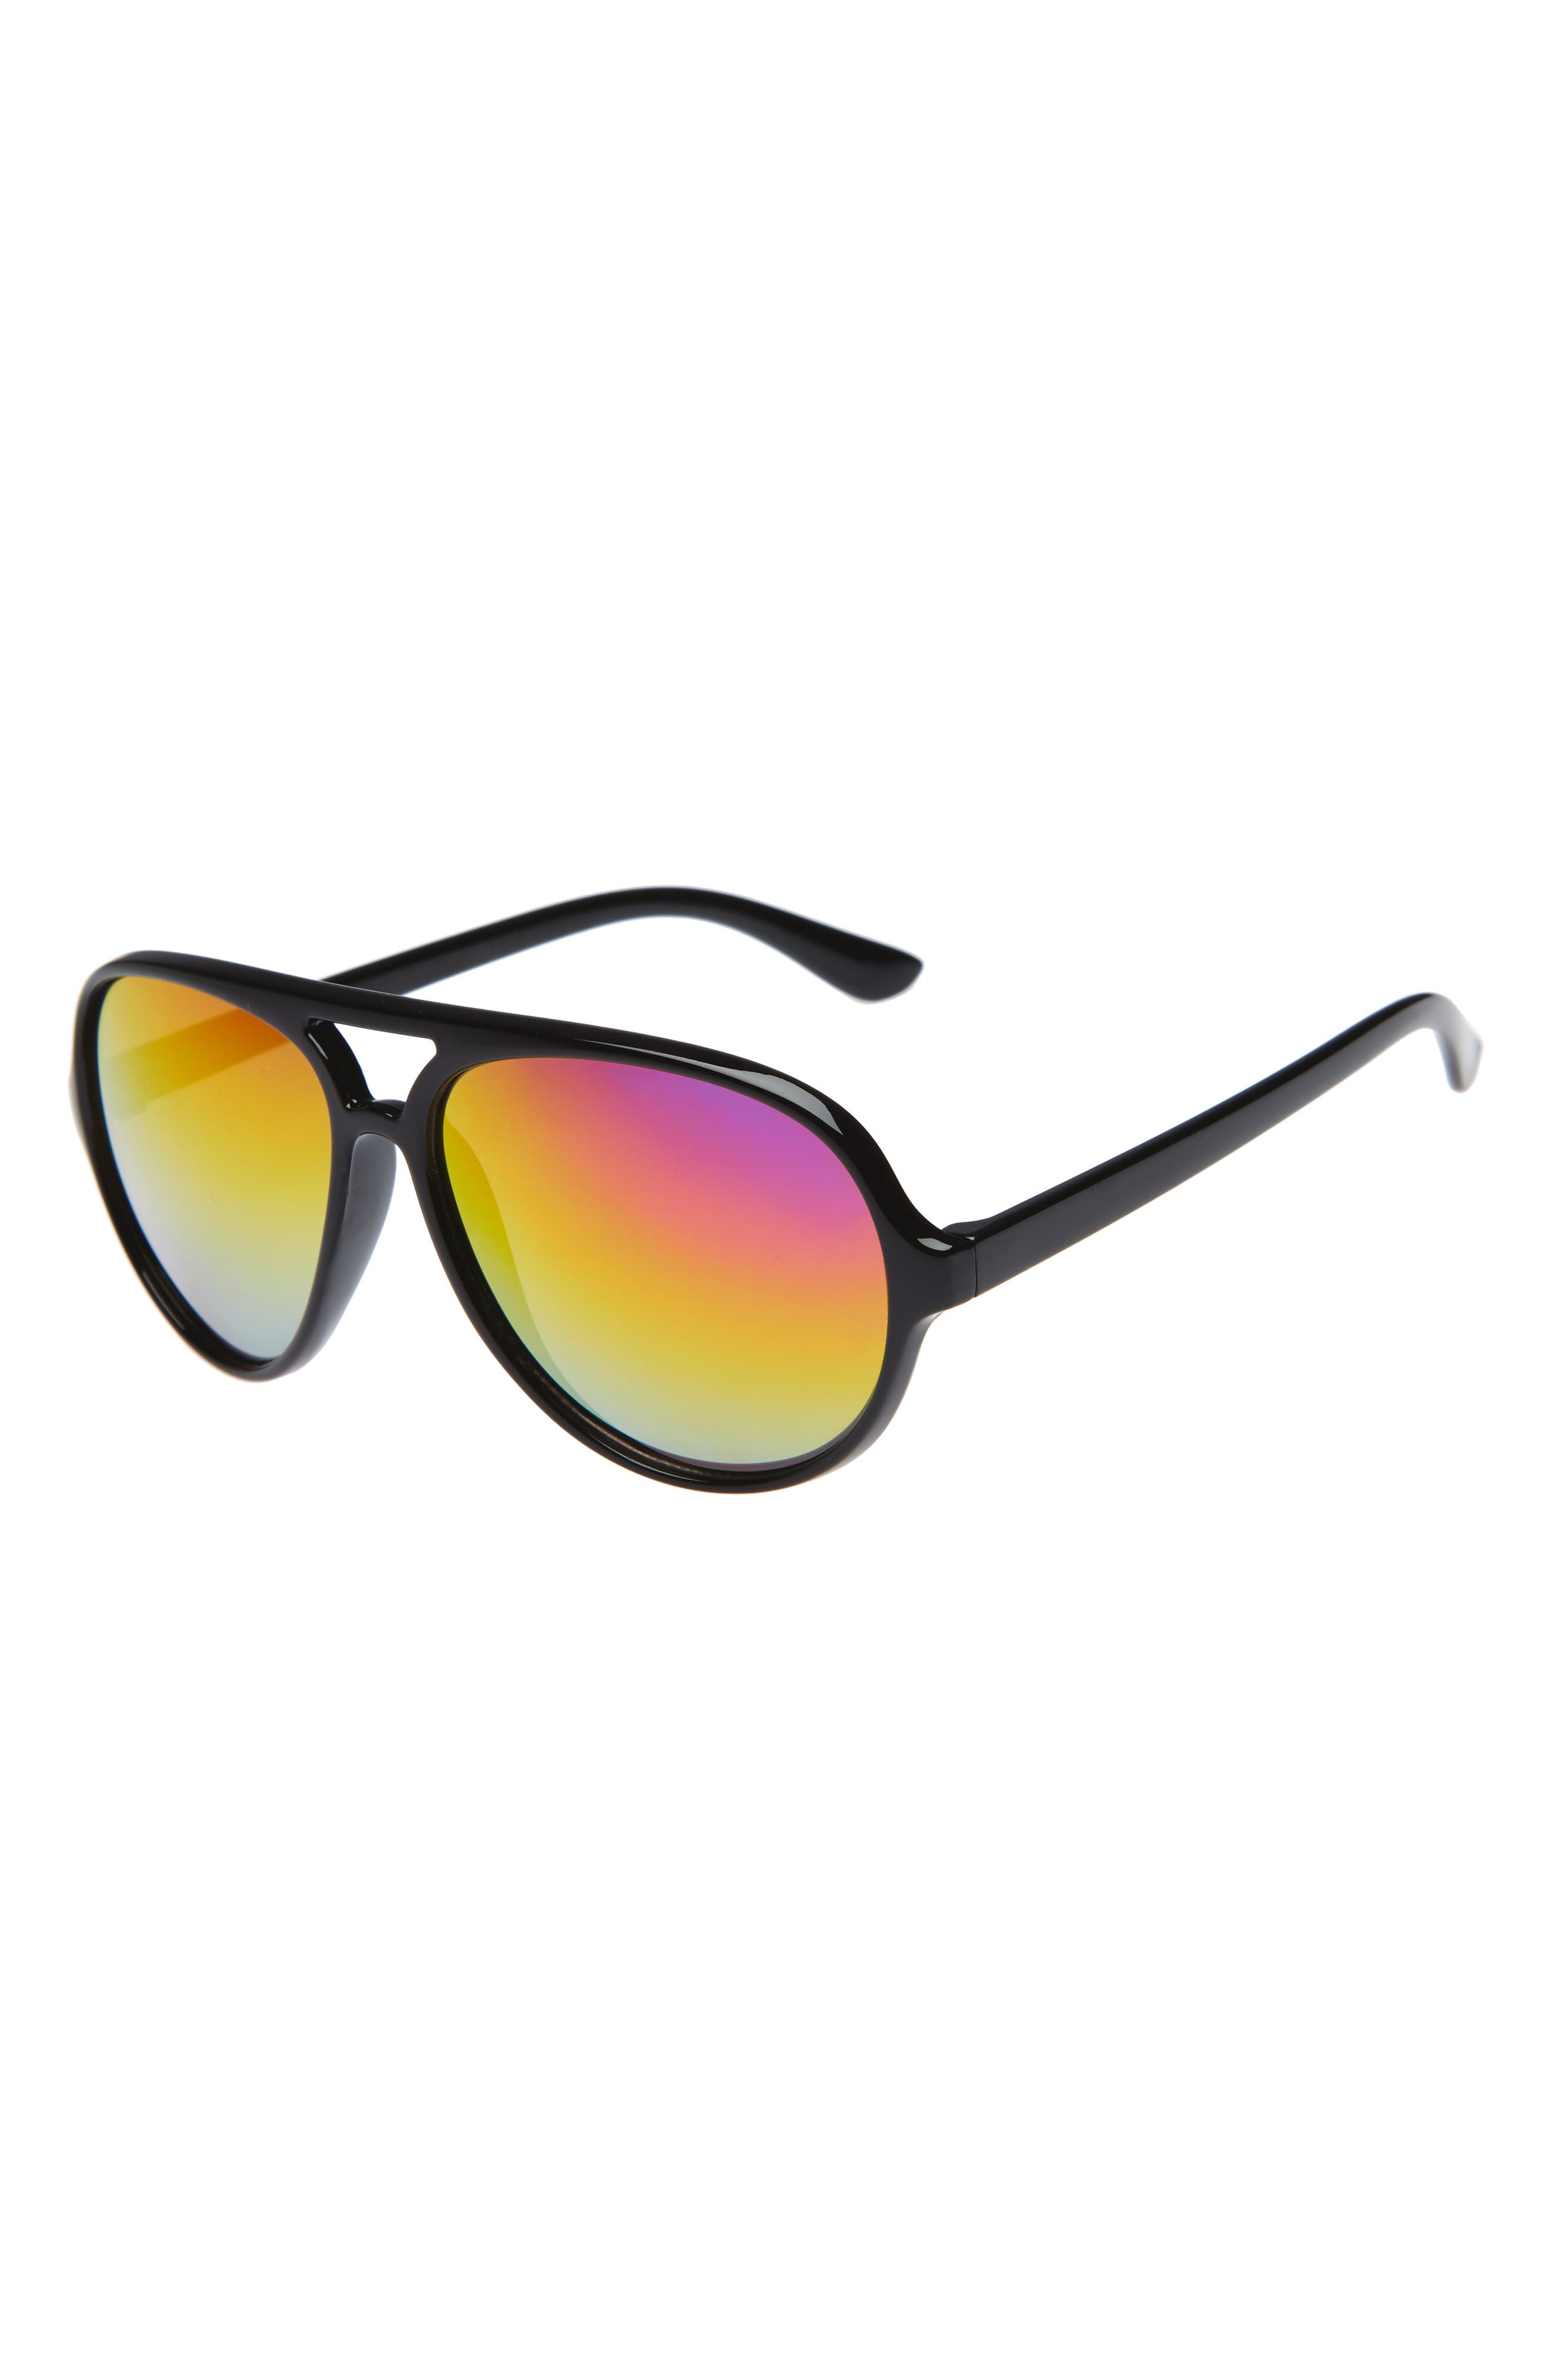 Mirrored Aviator Sunglasses,                         Main,                         color, 001